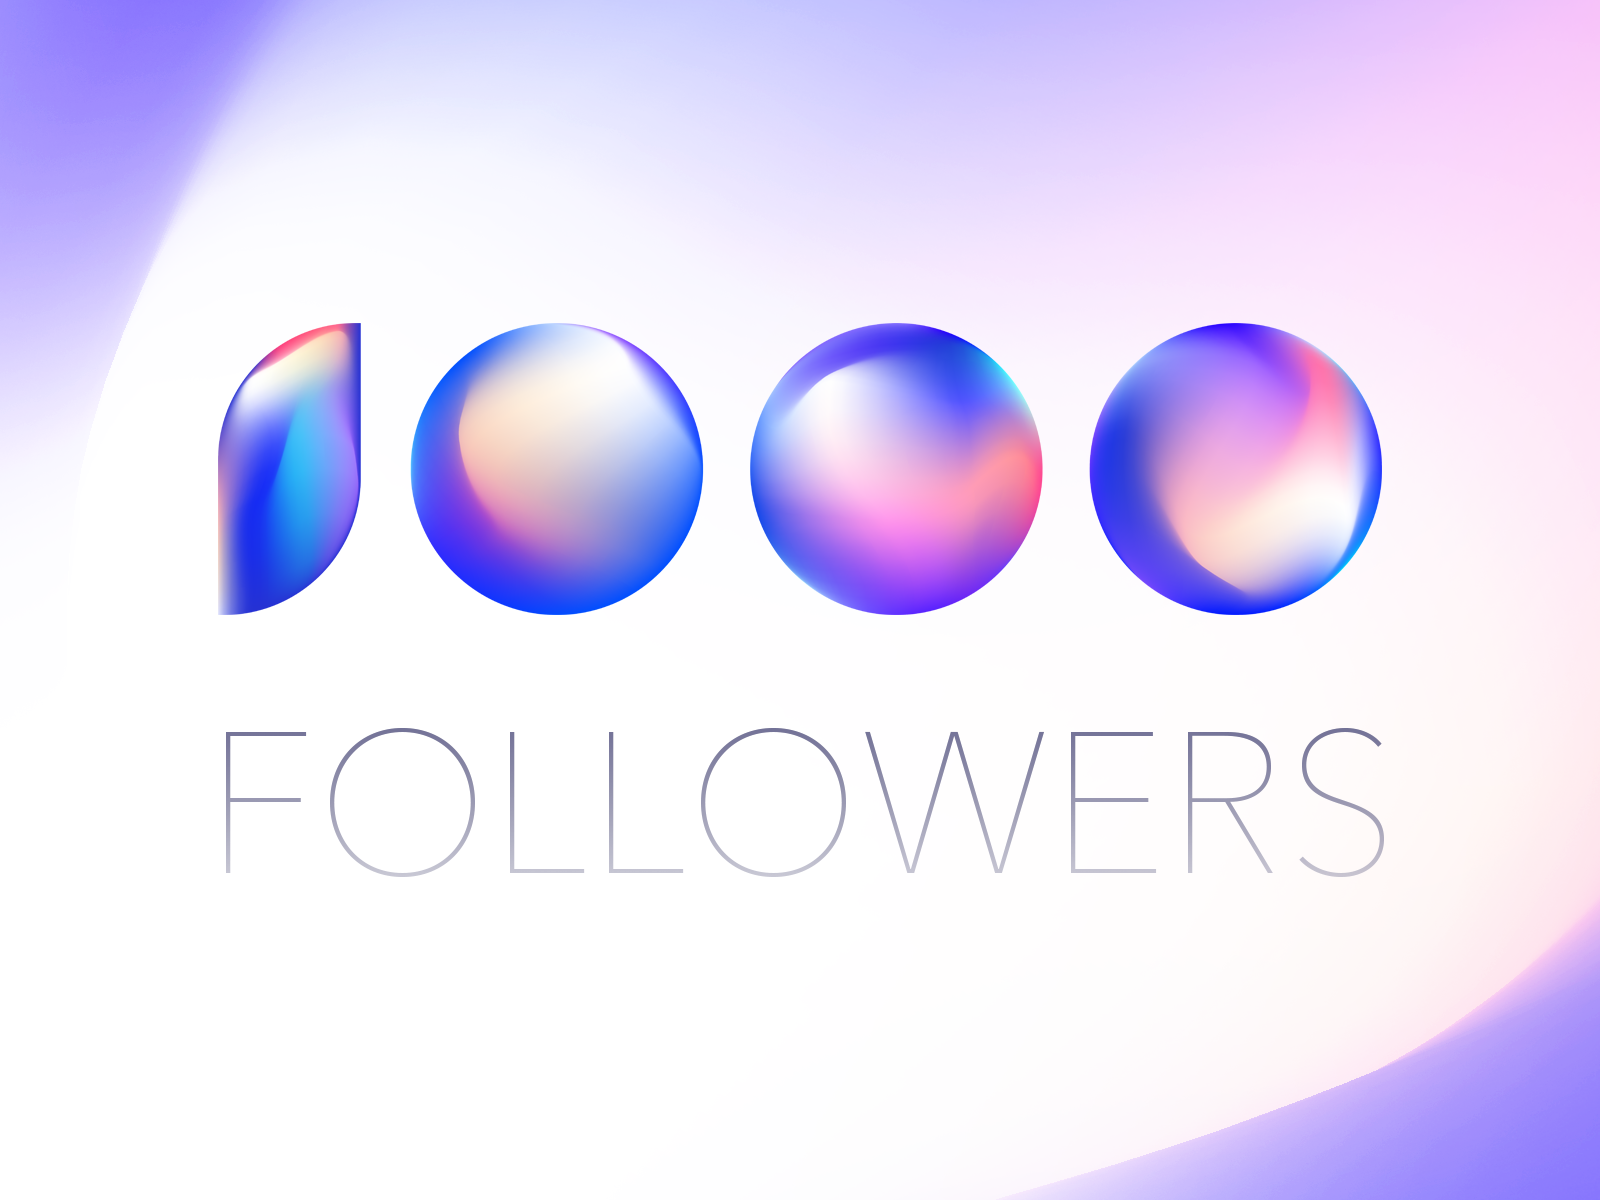 1000 Followers by Aleksandr Levchenko